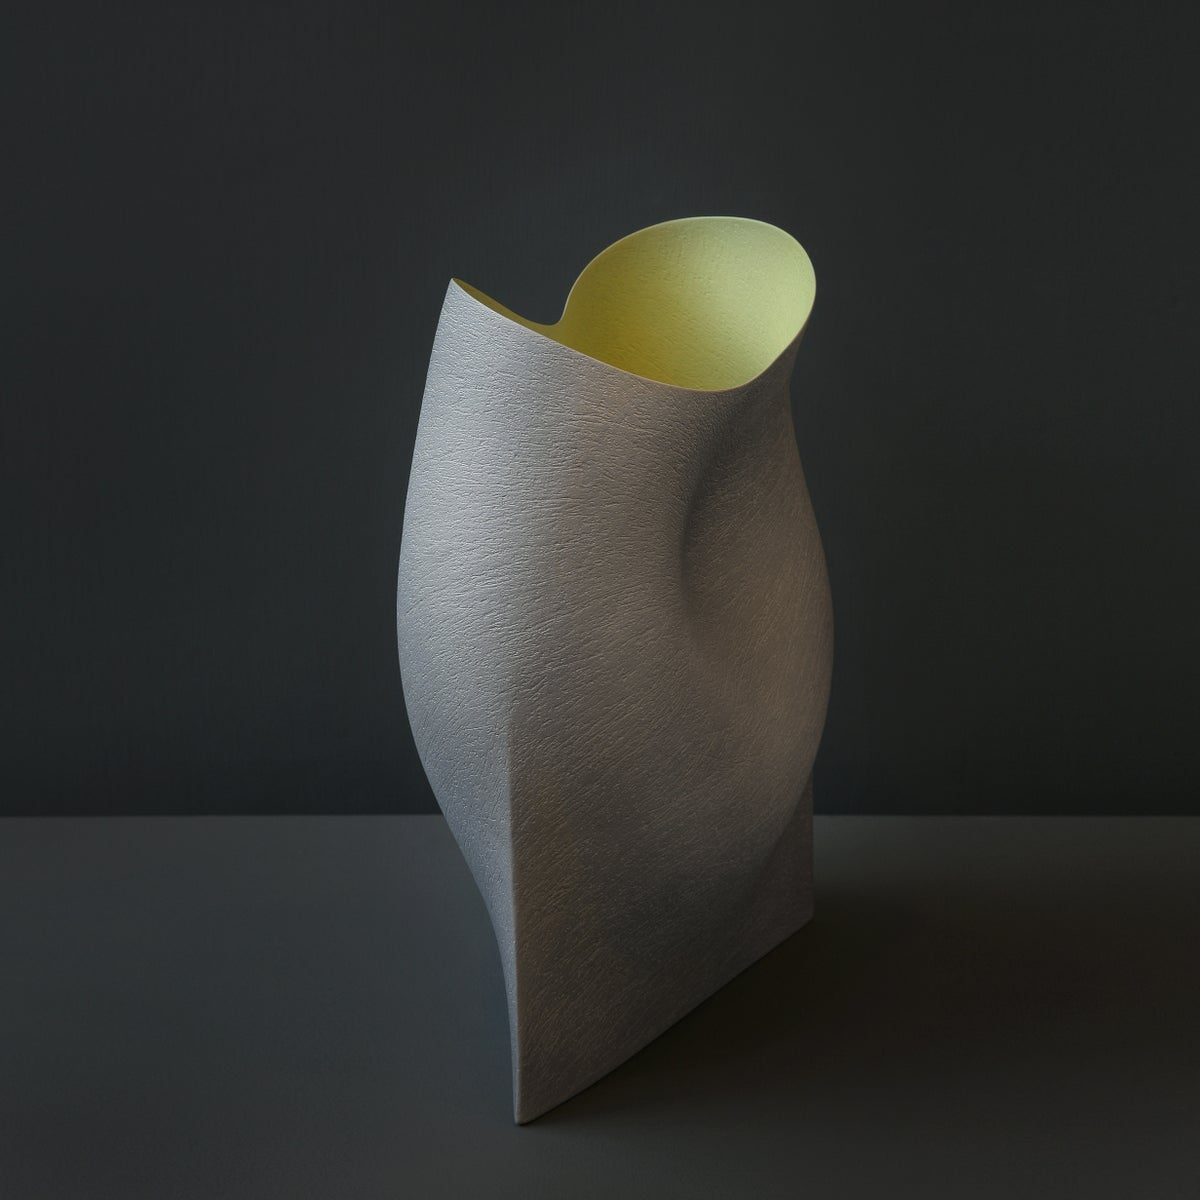 Image of Grey Undulating Vessel by Ashraf Hanna